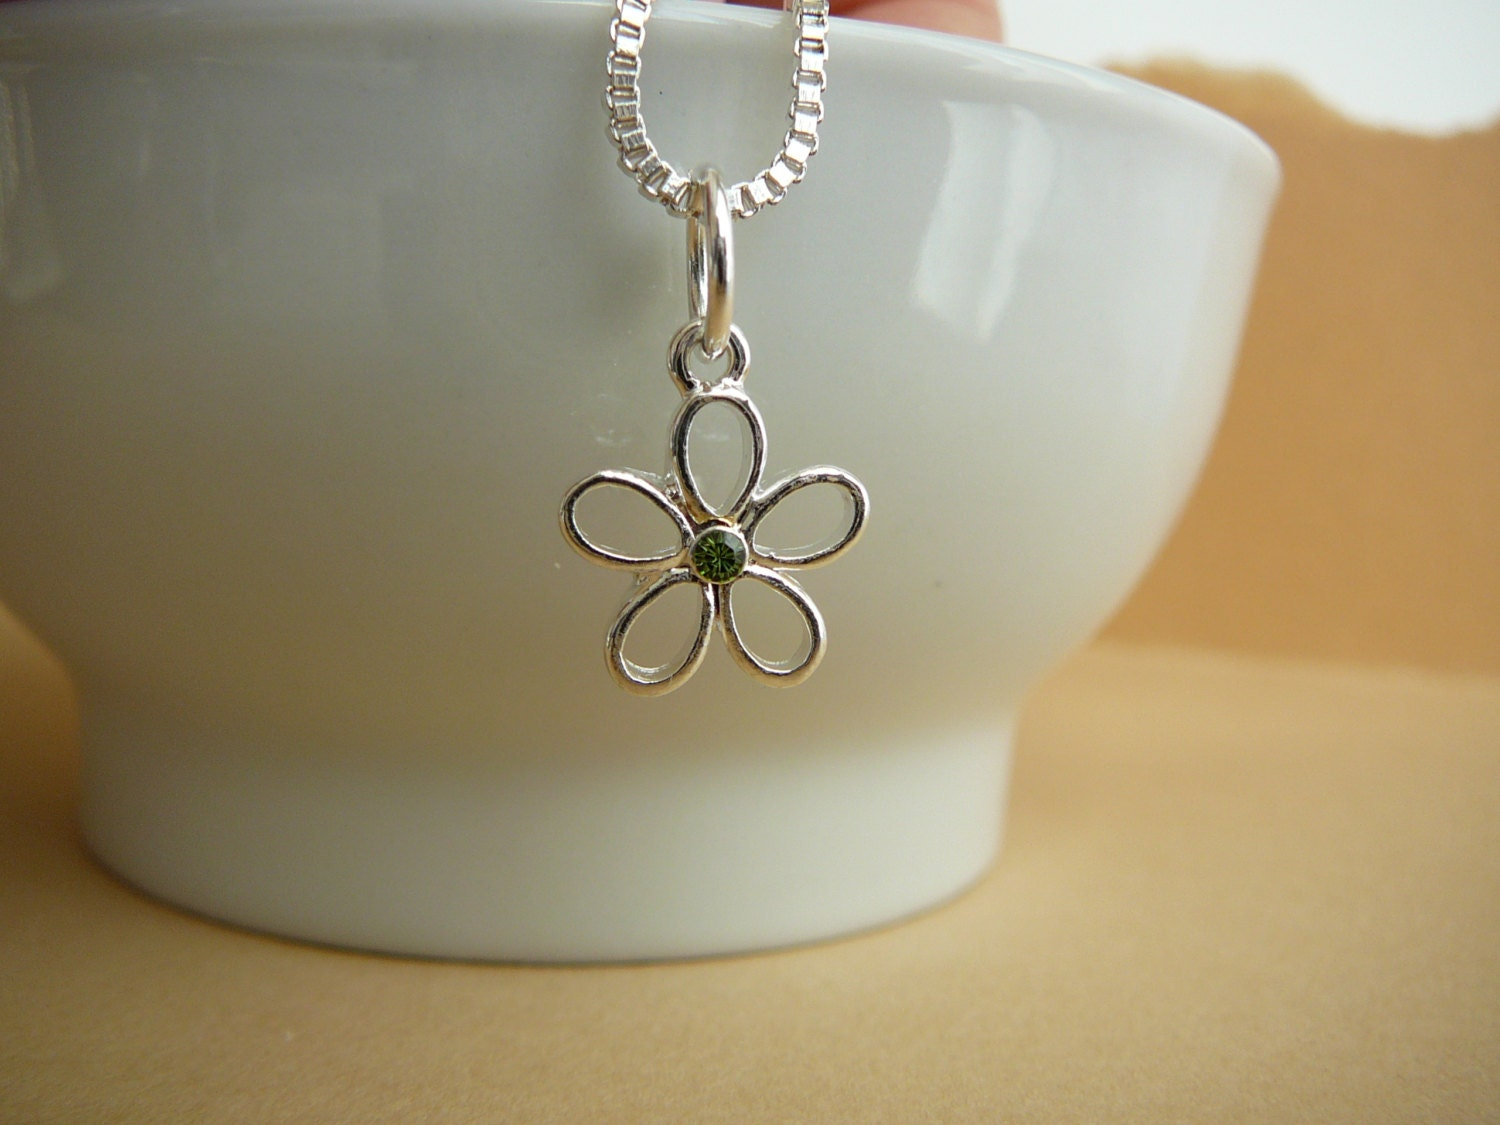 Silver flower charm with peridot crystal, suspended to a silver box chain - everyday wear jewelry - Free shipping to Canada & USA - CreationsChantal